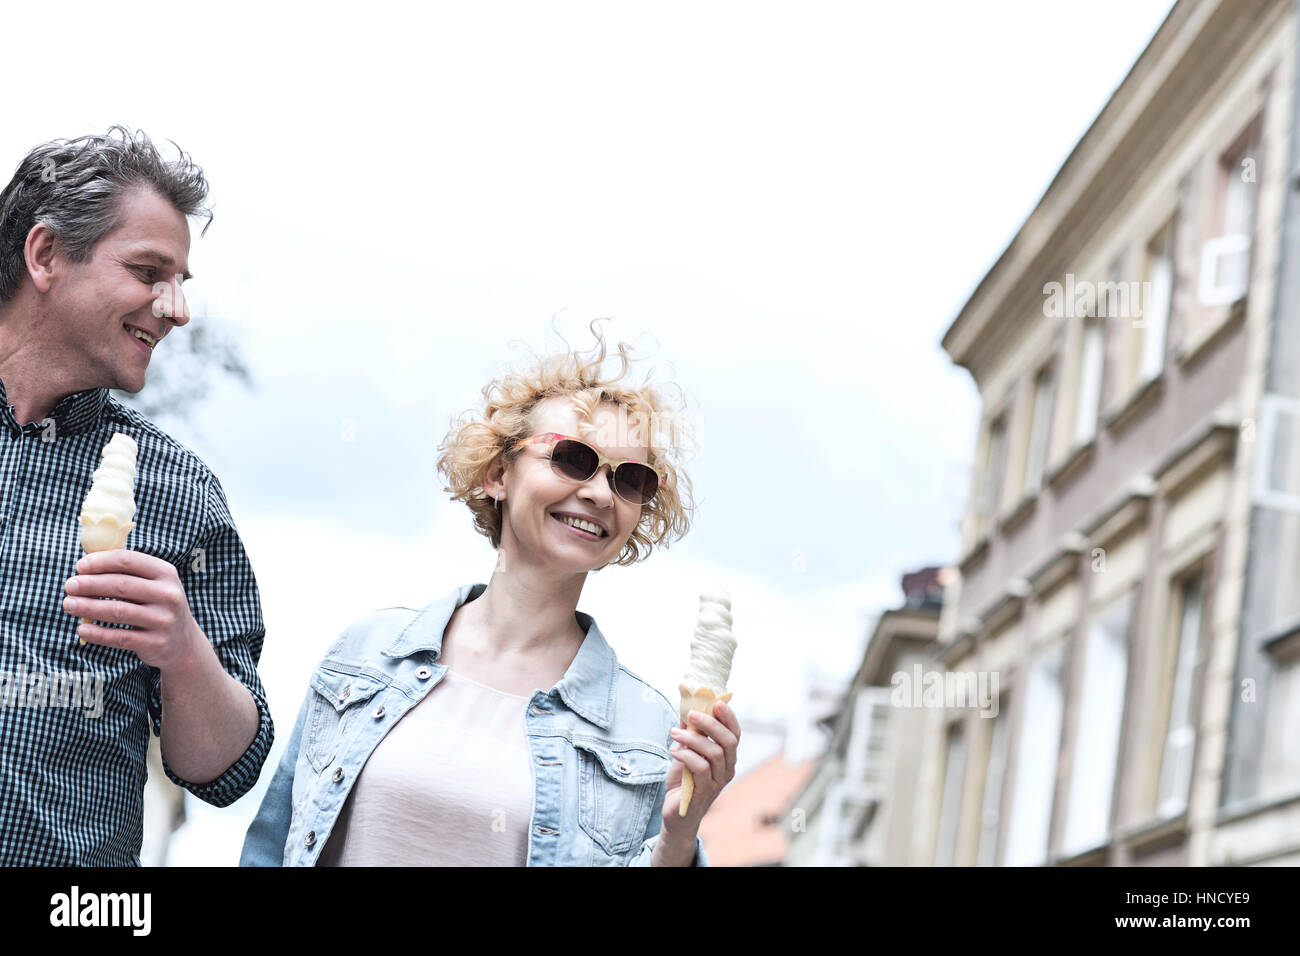 Smiling middle-aged couple holding ice cream cones on sunny day - Stock Image